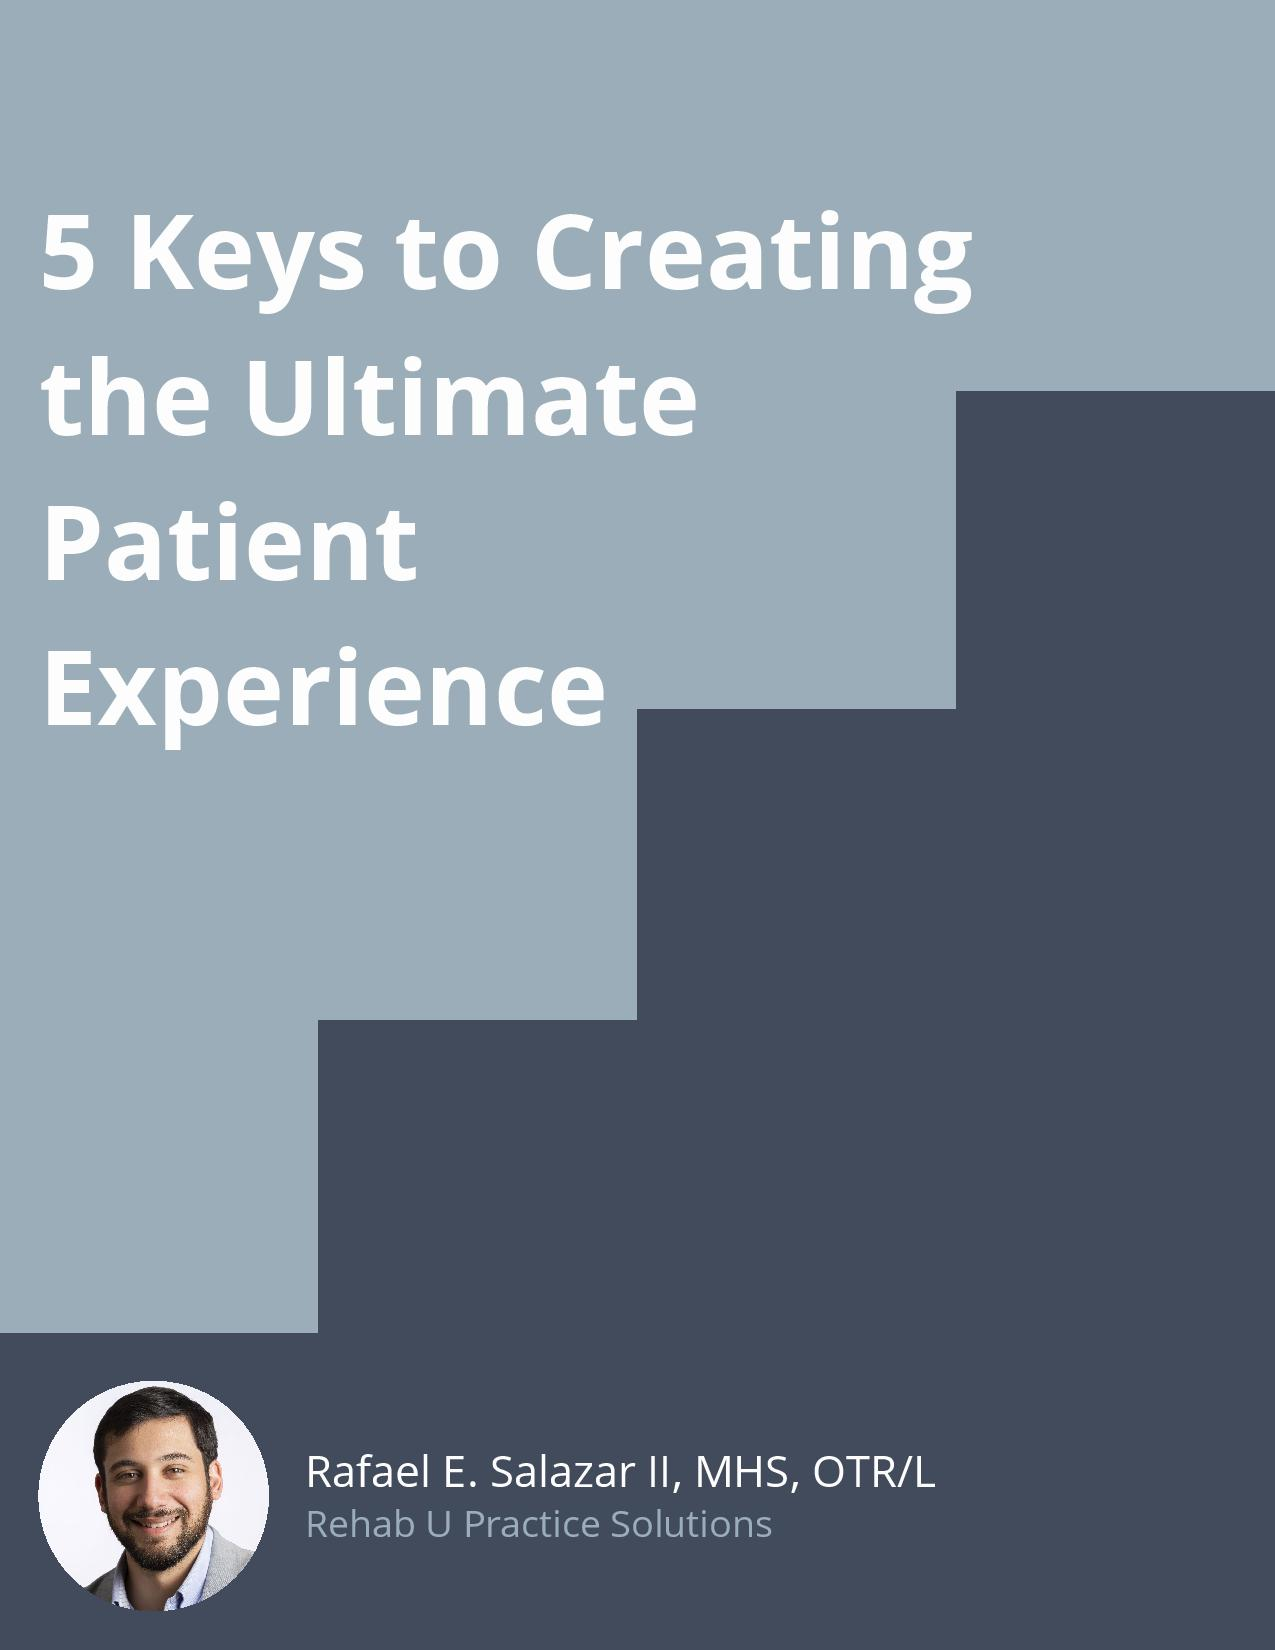 5 Keys to the Ultimate Patient Experience